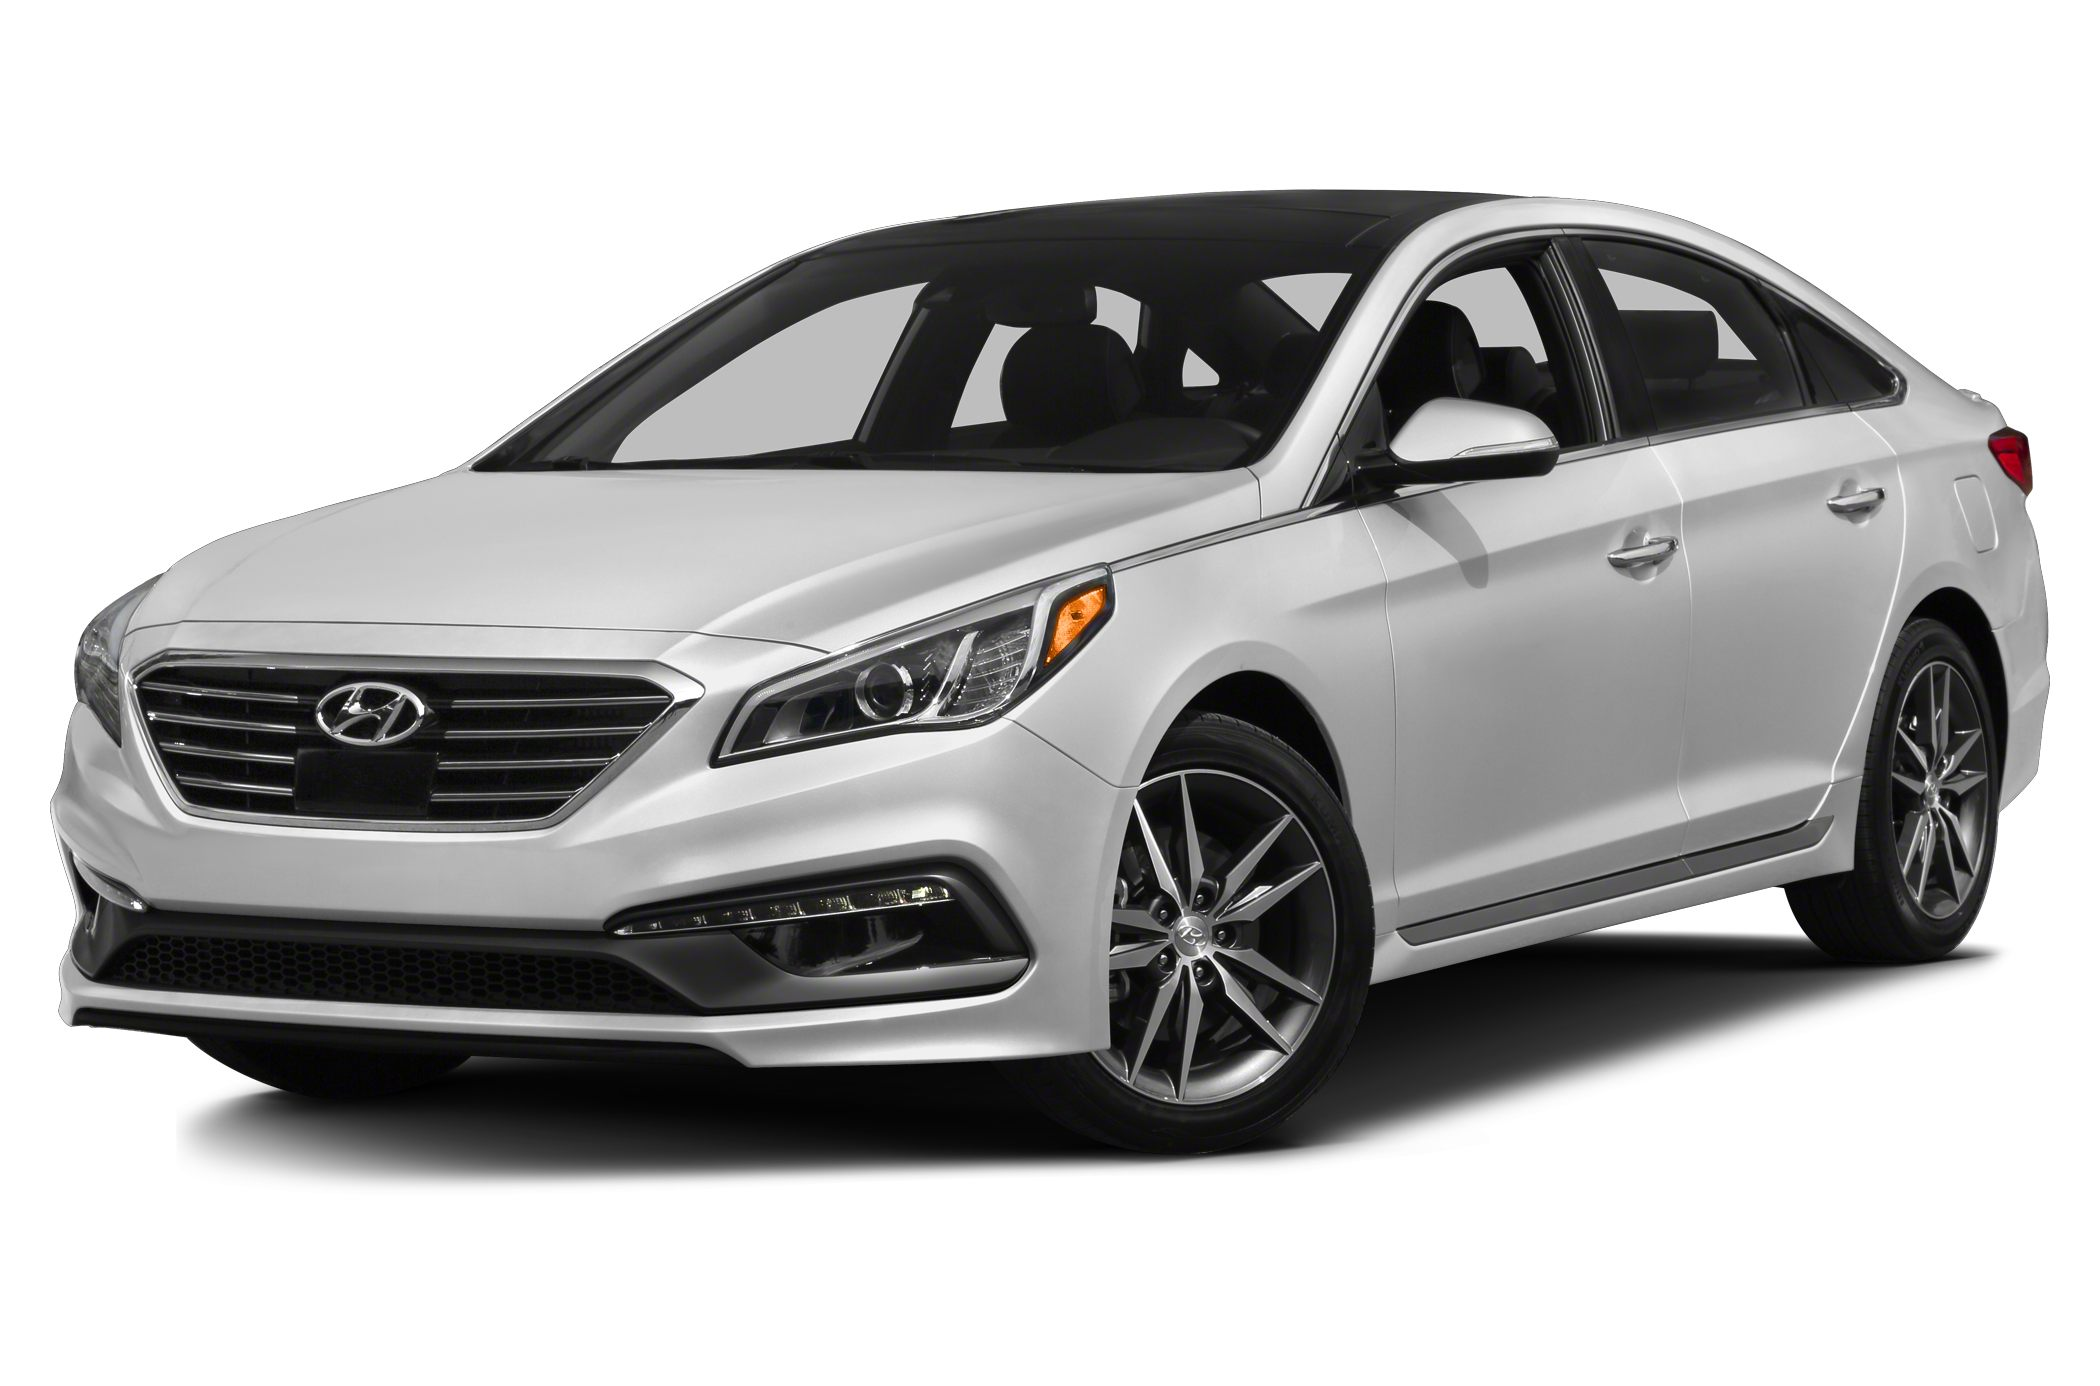 2015 Hyundai Sonata Sport 2.0T Sedan for sale in Rainbow City for $28,140 with 5 miles.